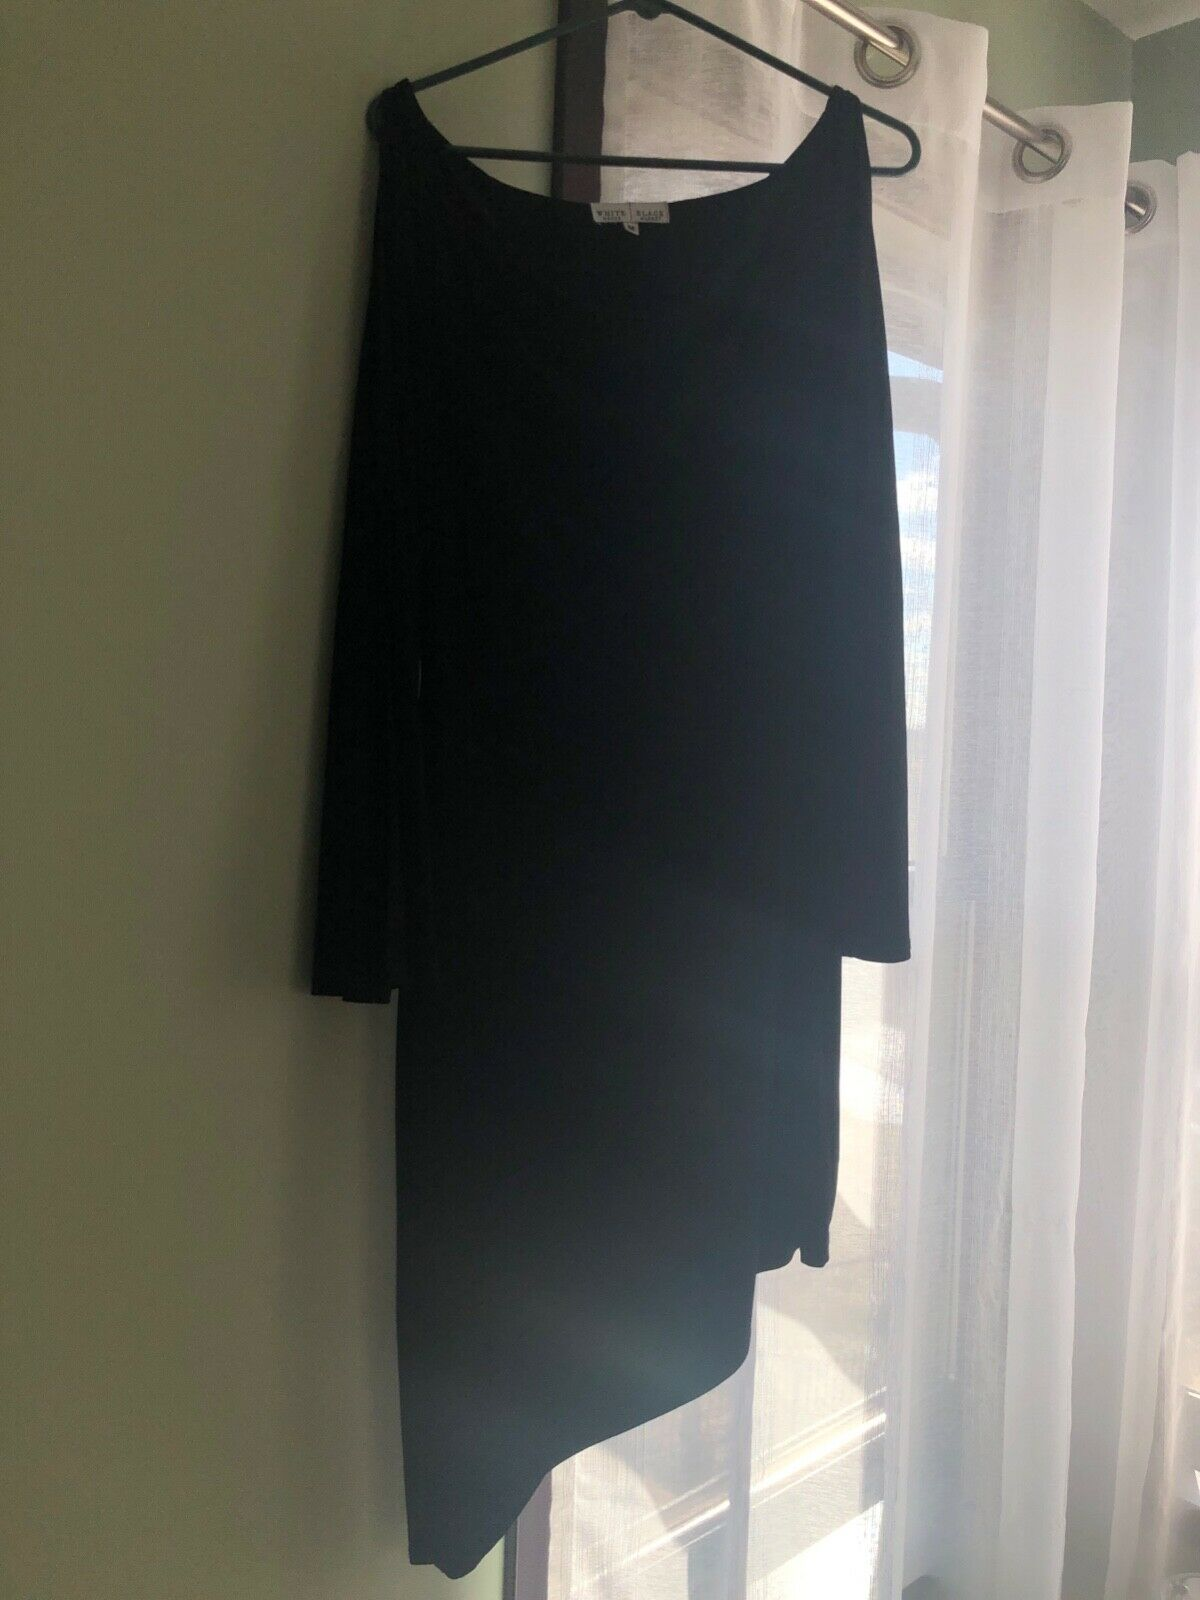 schwarz dress with asymmetrical hemline. Open long sleeves. Perfect for weddings